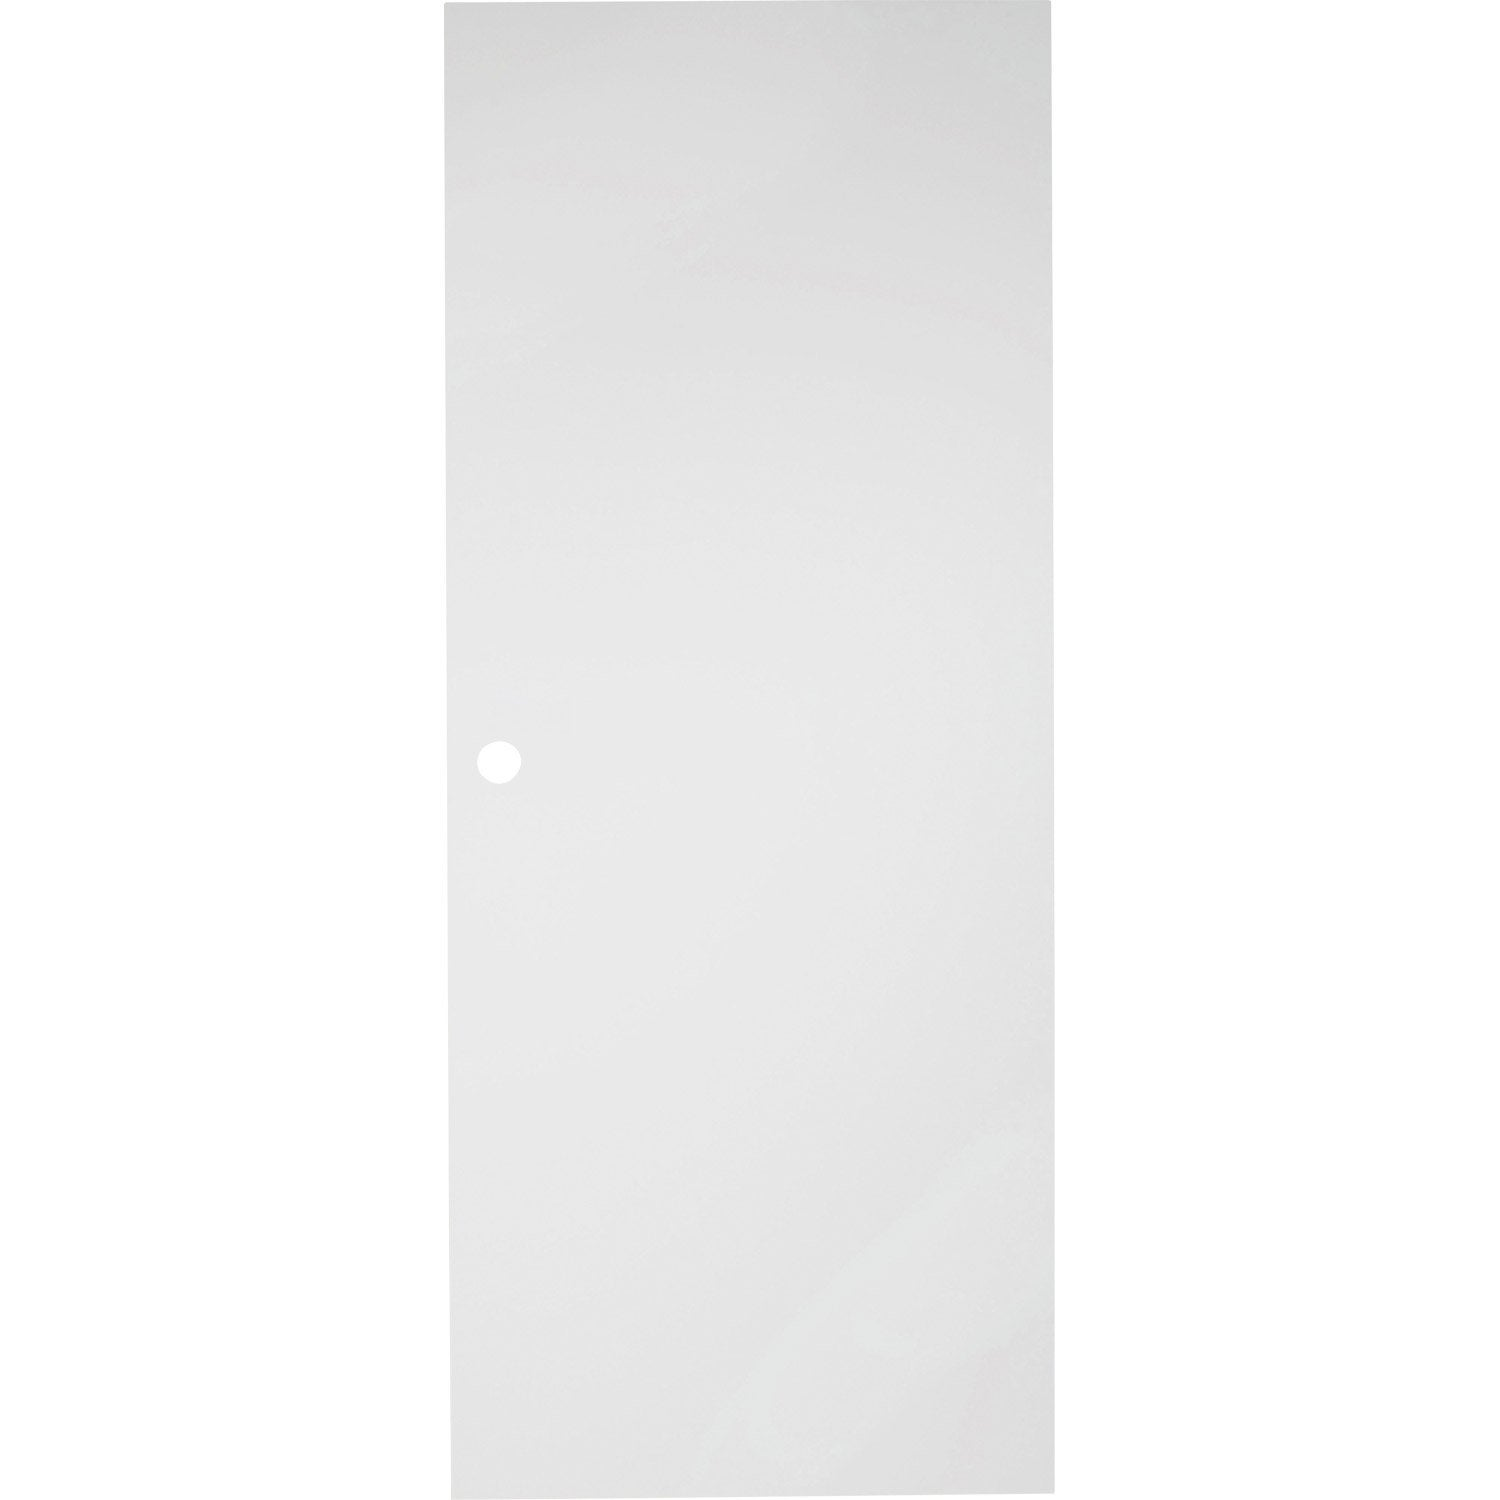 Porte coulissante lily 224 x 83 cm leroy merlin - Portes coulissantes chez leroy merlin ...